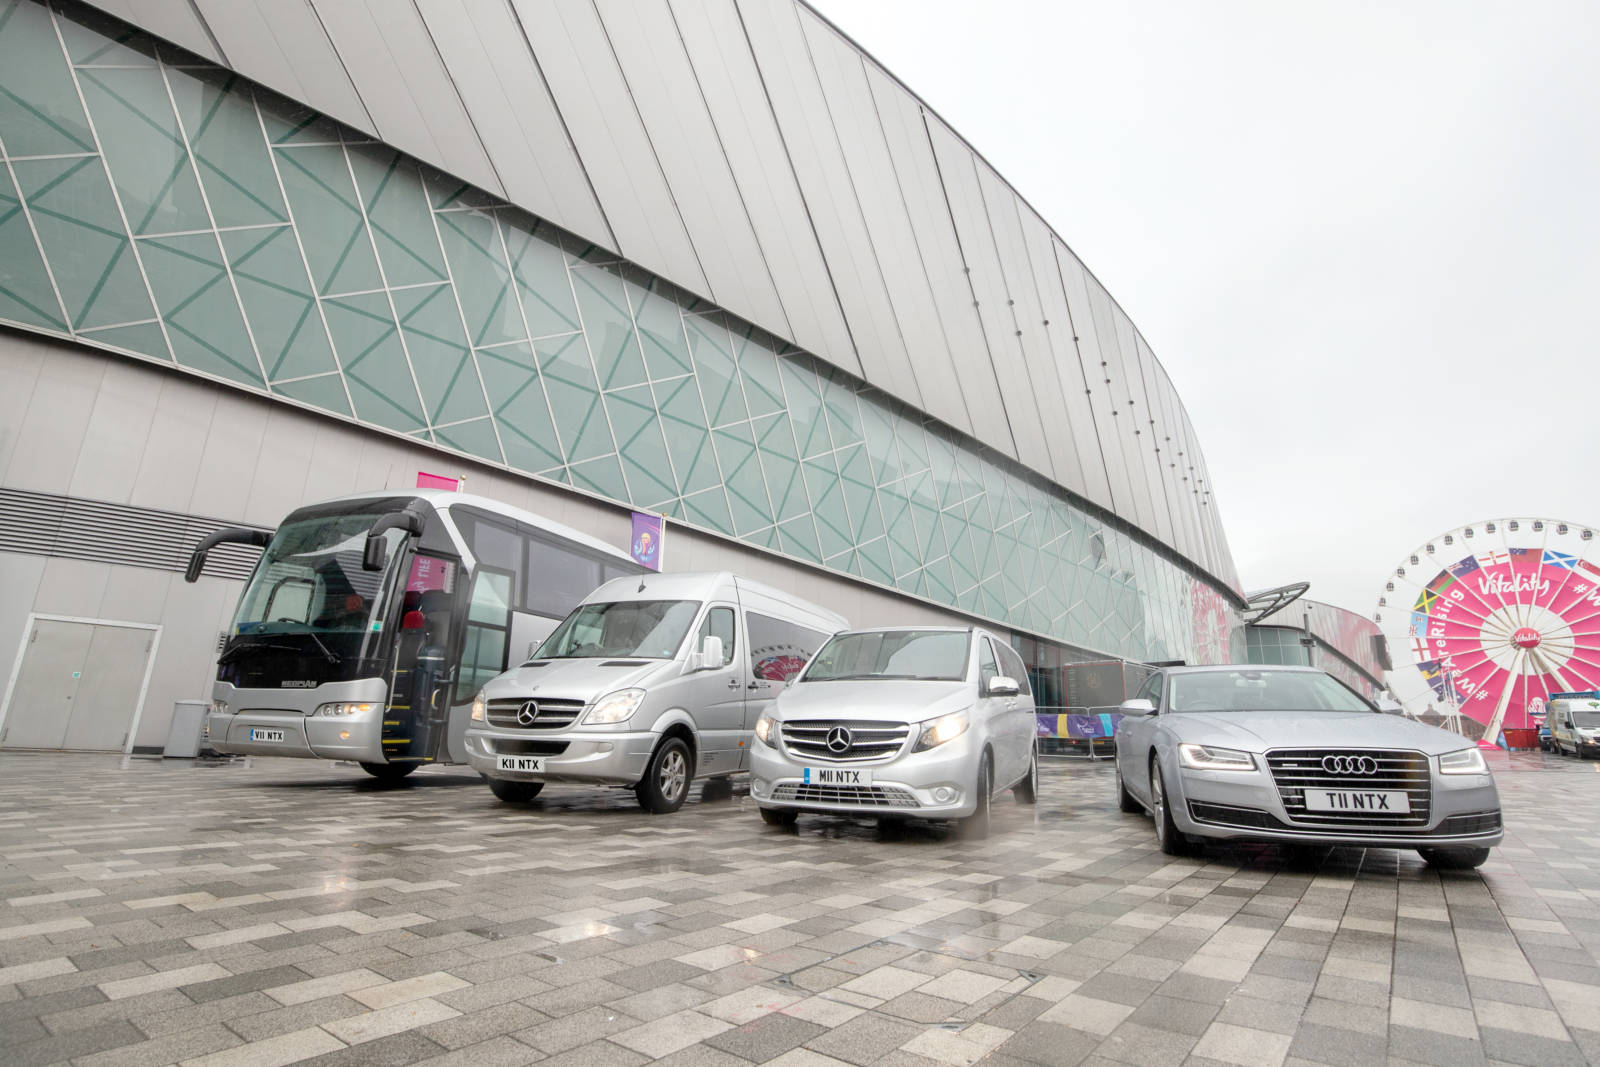 Event Transport Company INTX Celebrates 20 years with Two Major Contract Wins